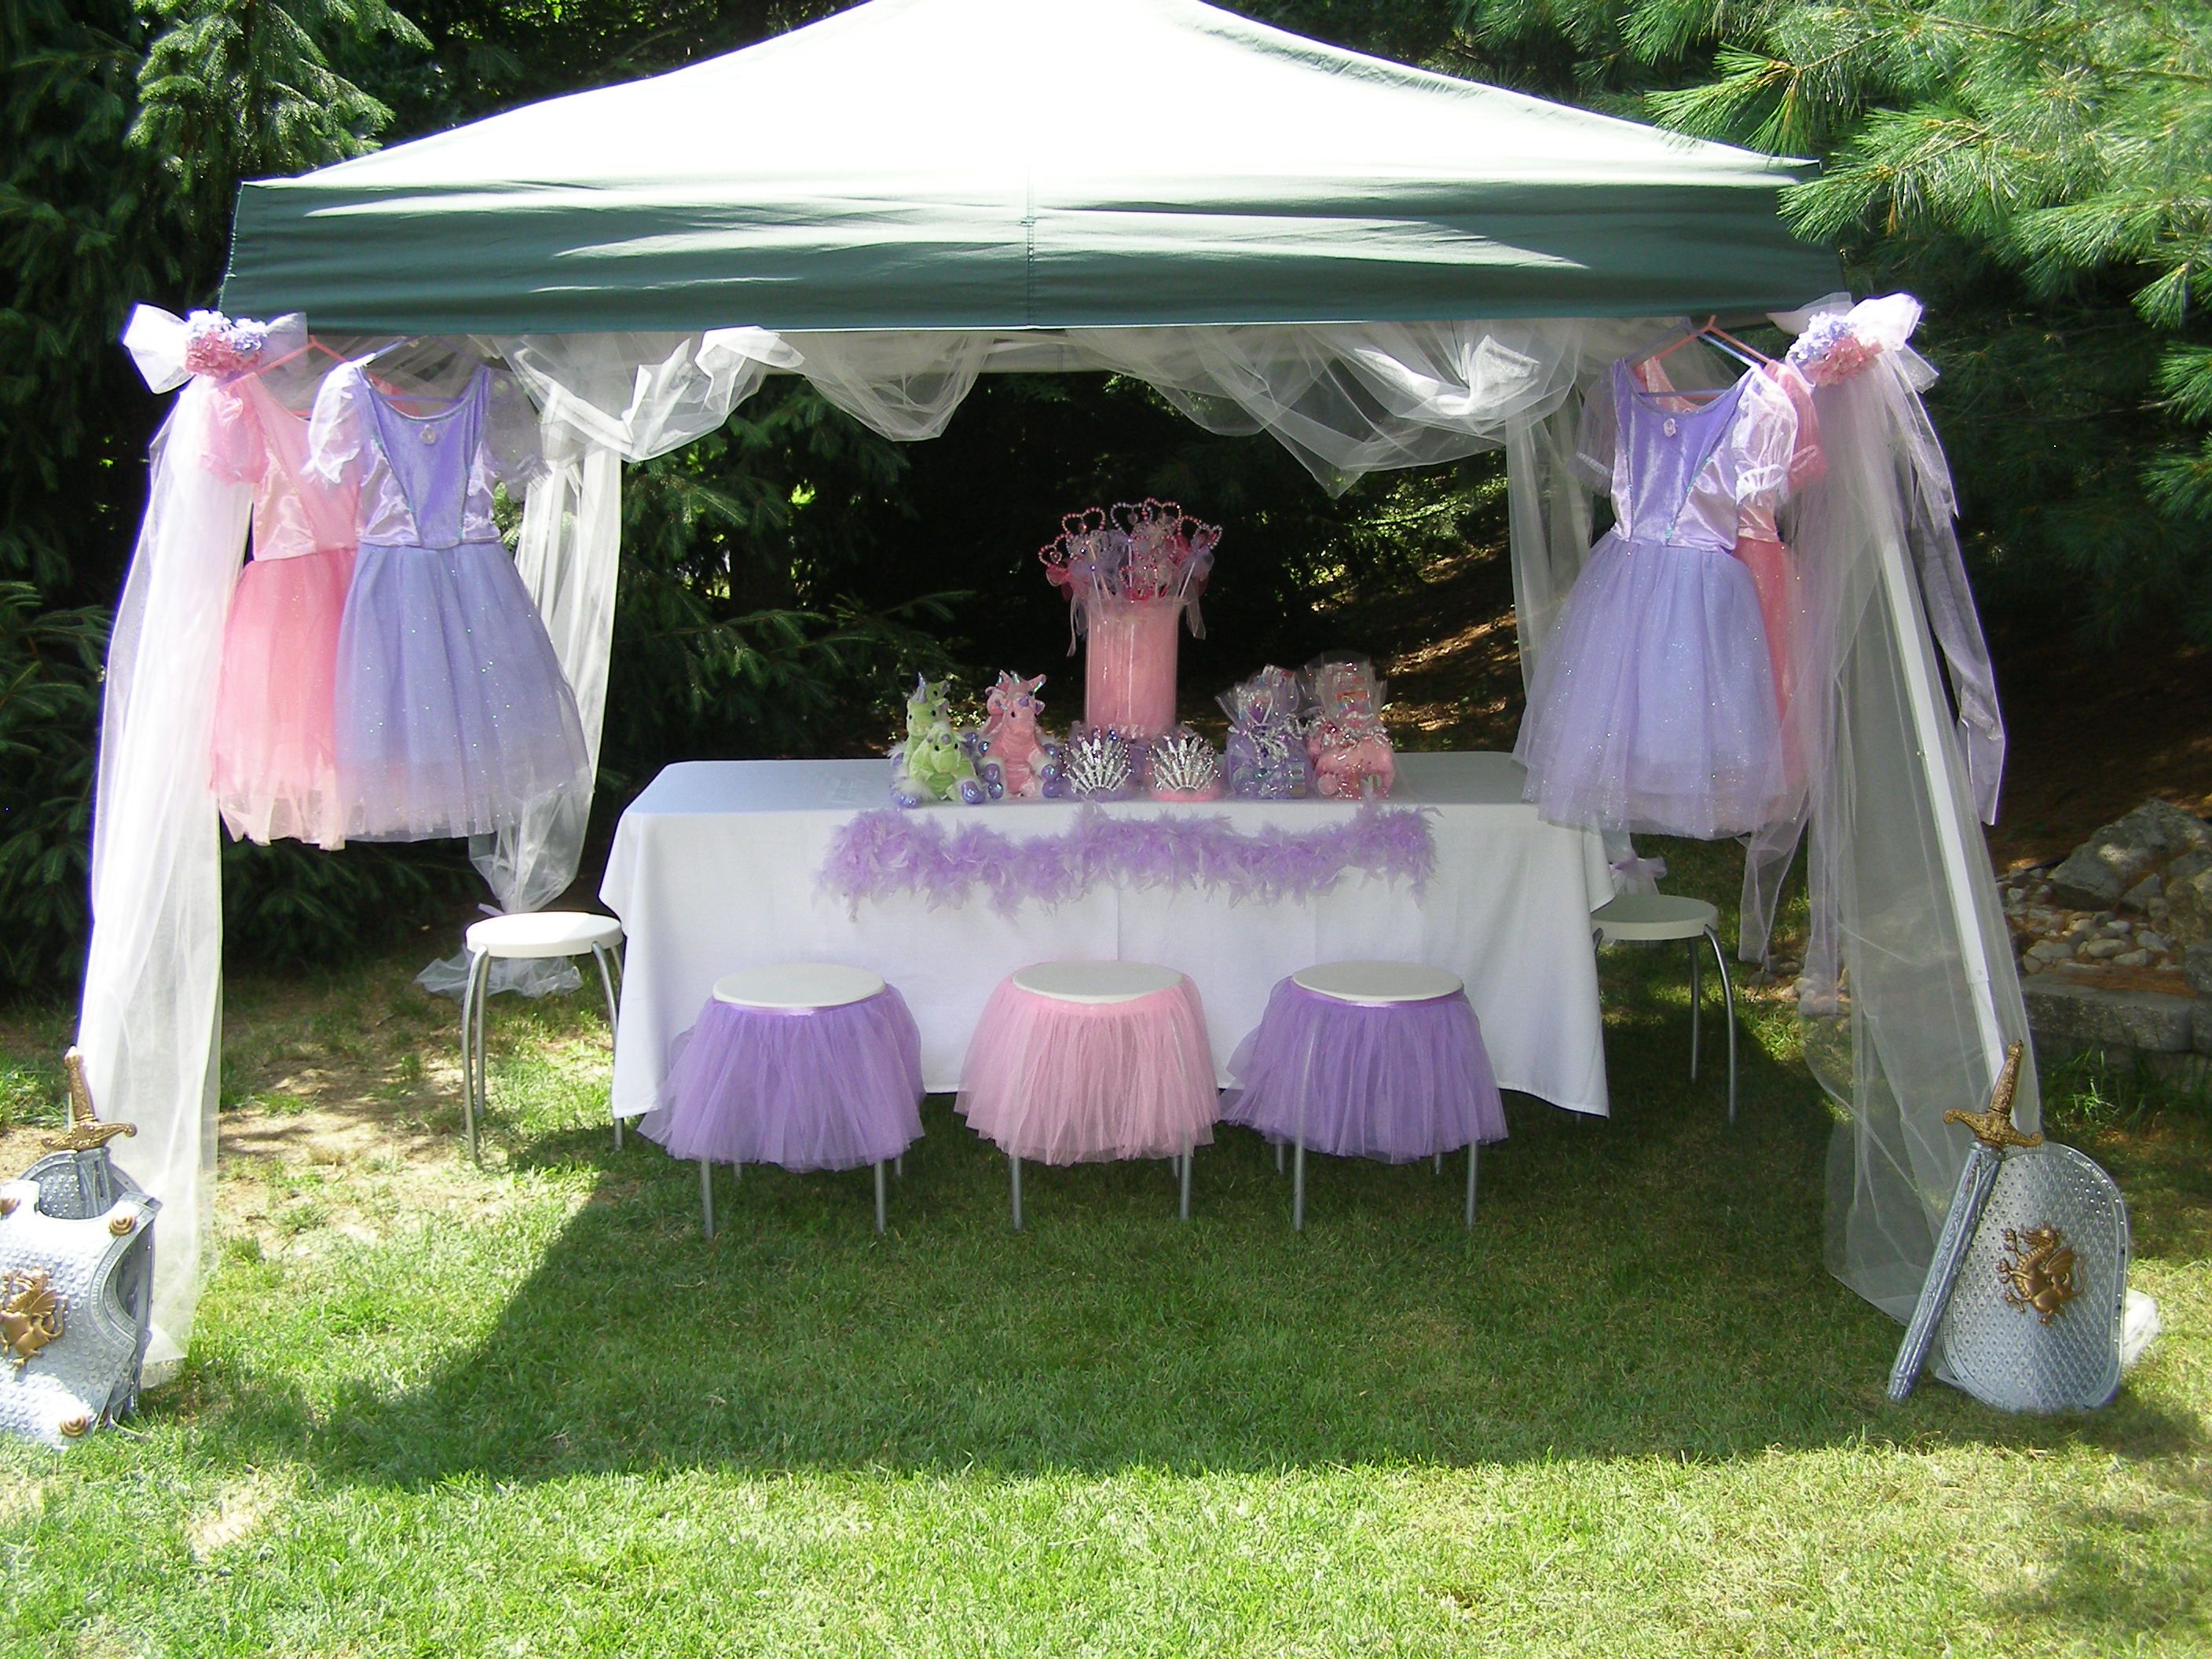 EZ Up Gazebos can be used so easily for an outdoor